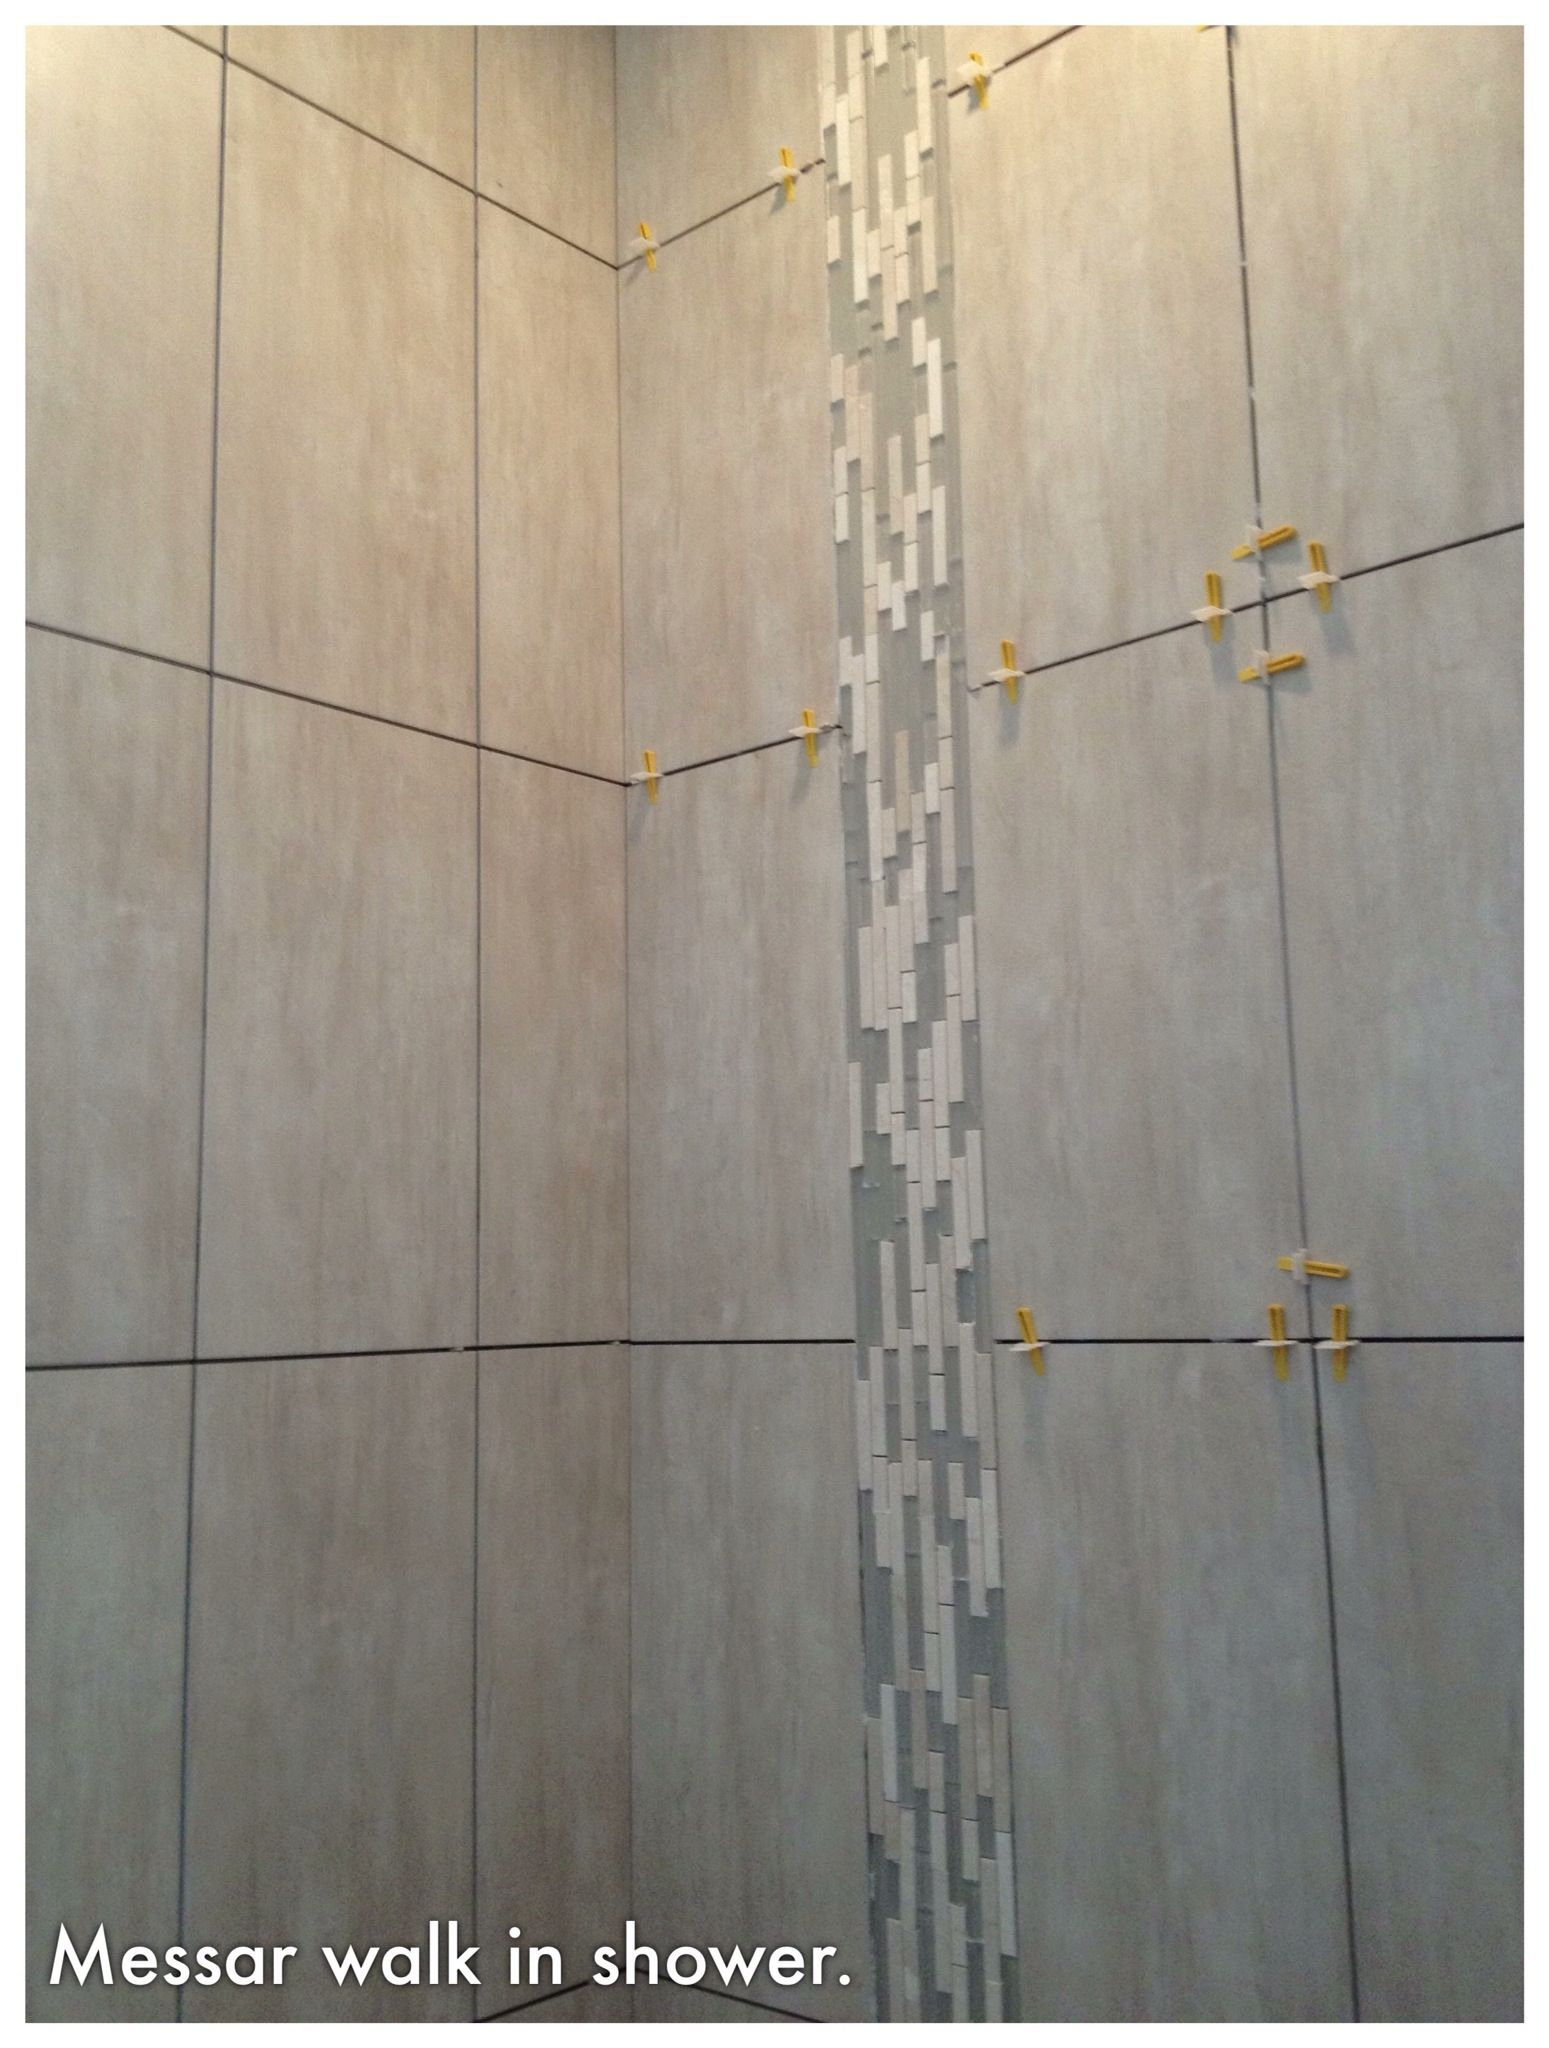 Waterfall Shower Ideas Walk In Shower 12 X 24 Tiles And Vertical Waterfall Glass